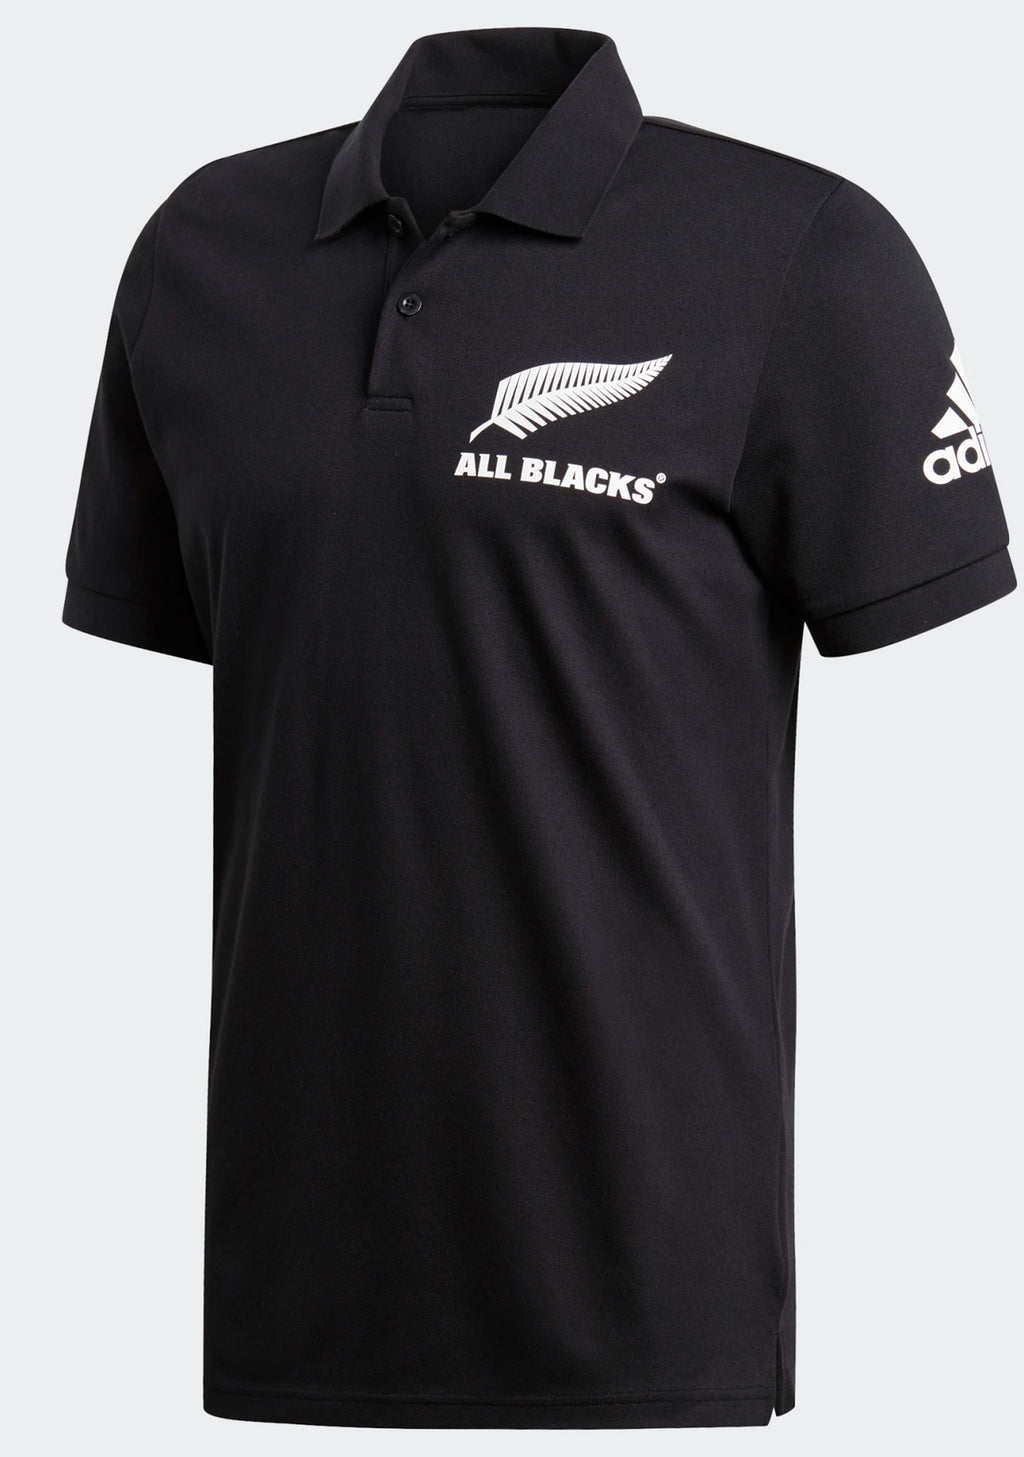 ADIDAS MENS NEW ZEALAND ALL BLACKS SUPPORTER POLO <BR> DY3830